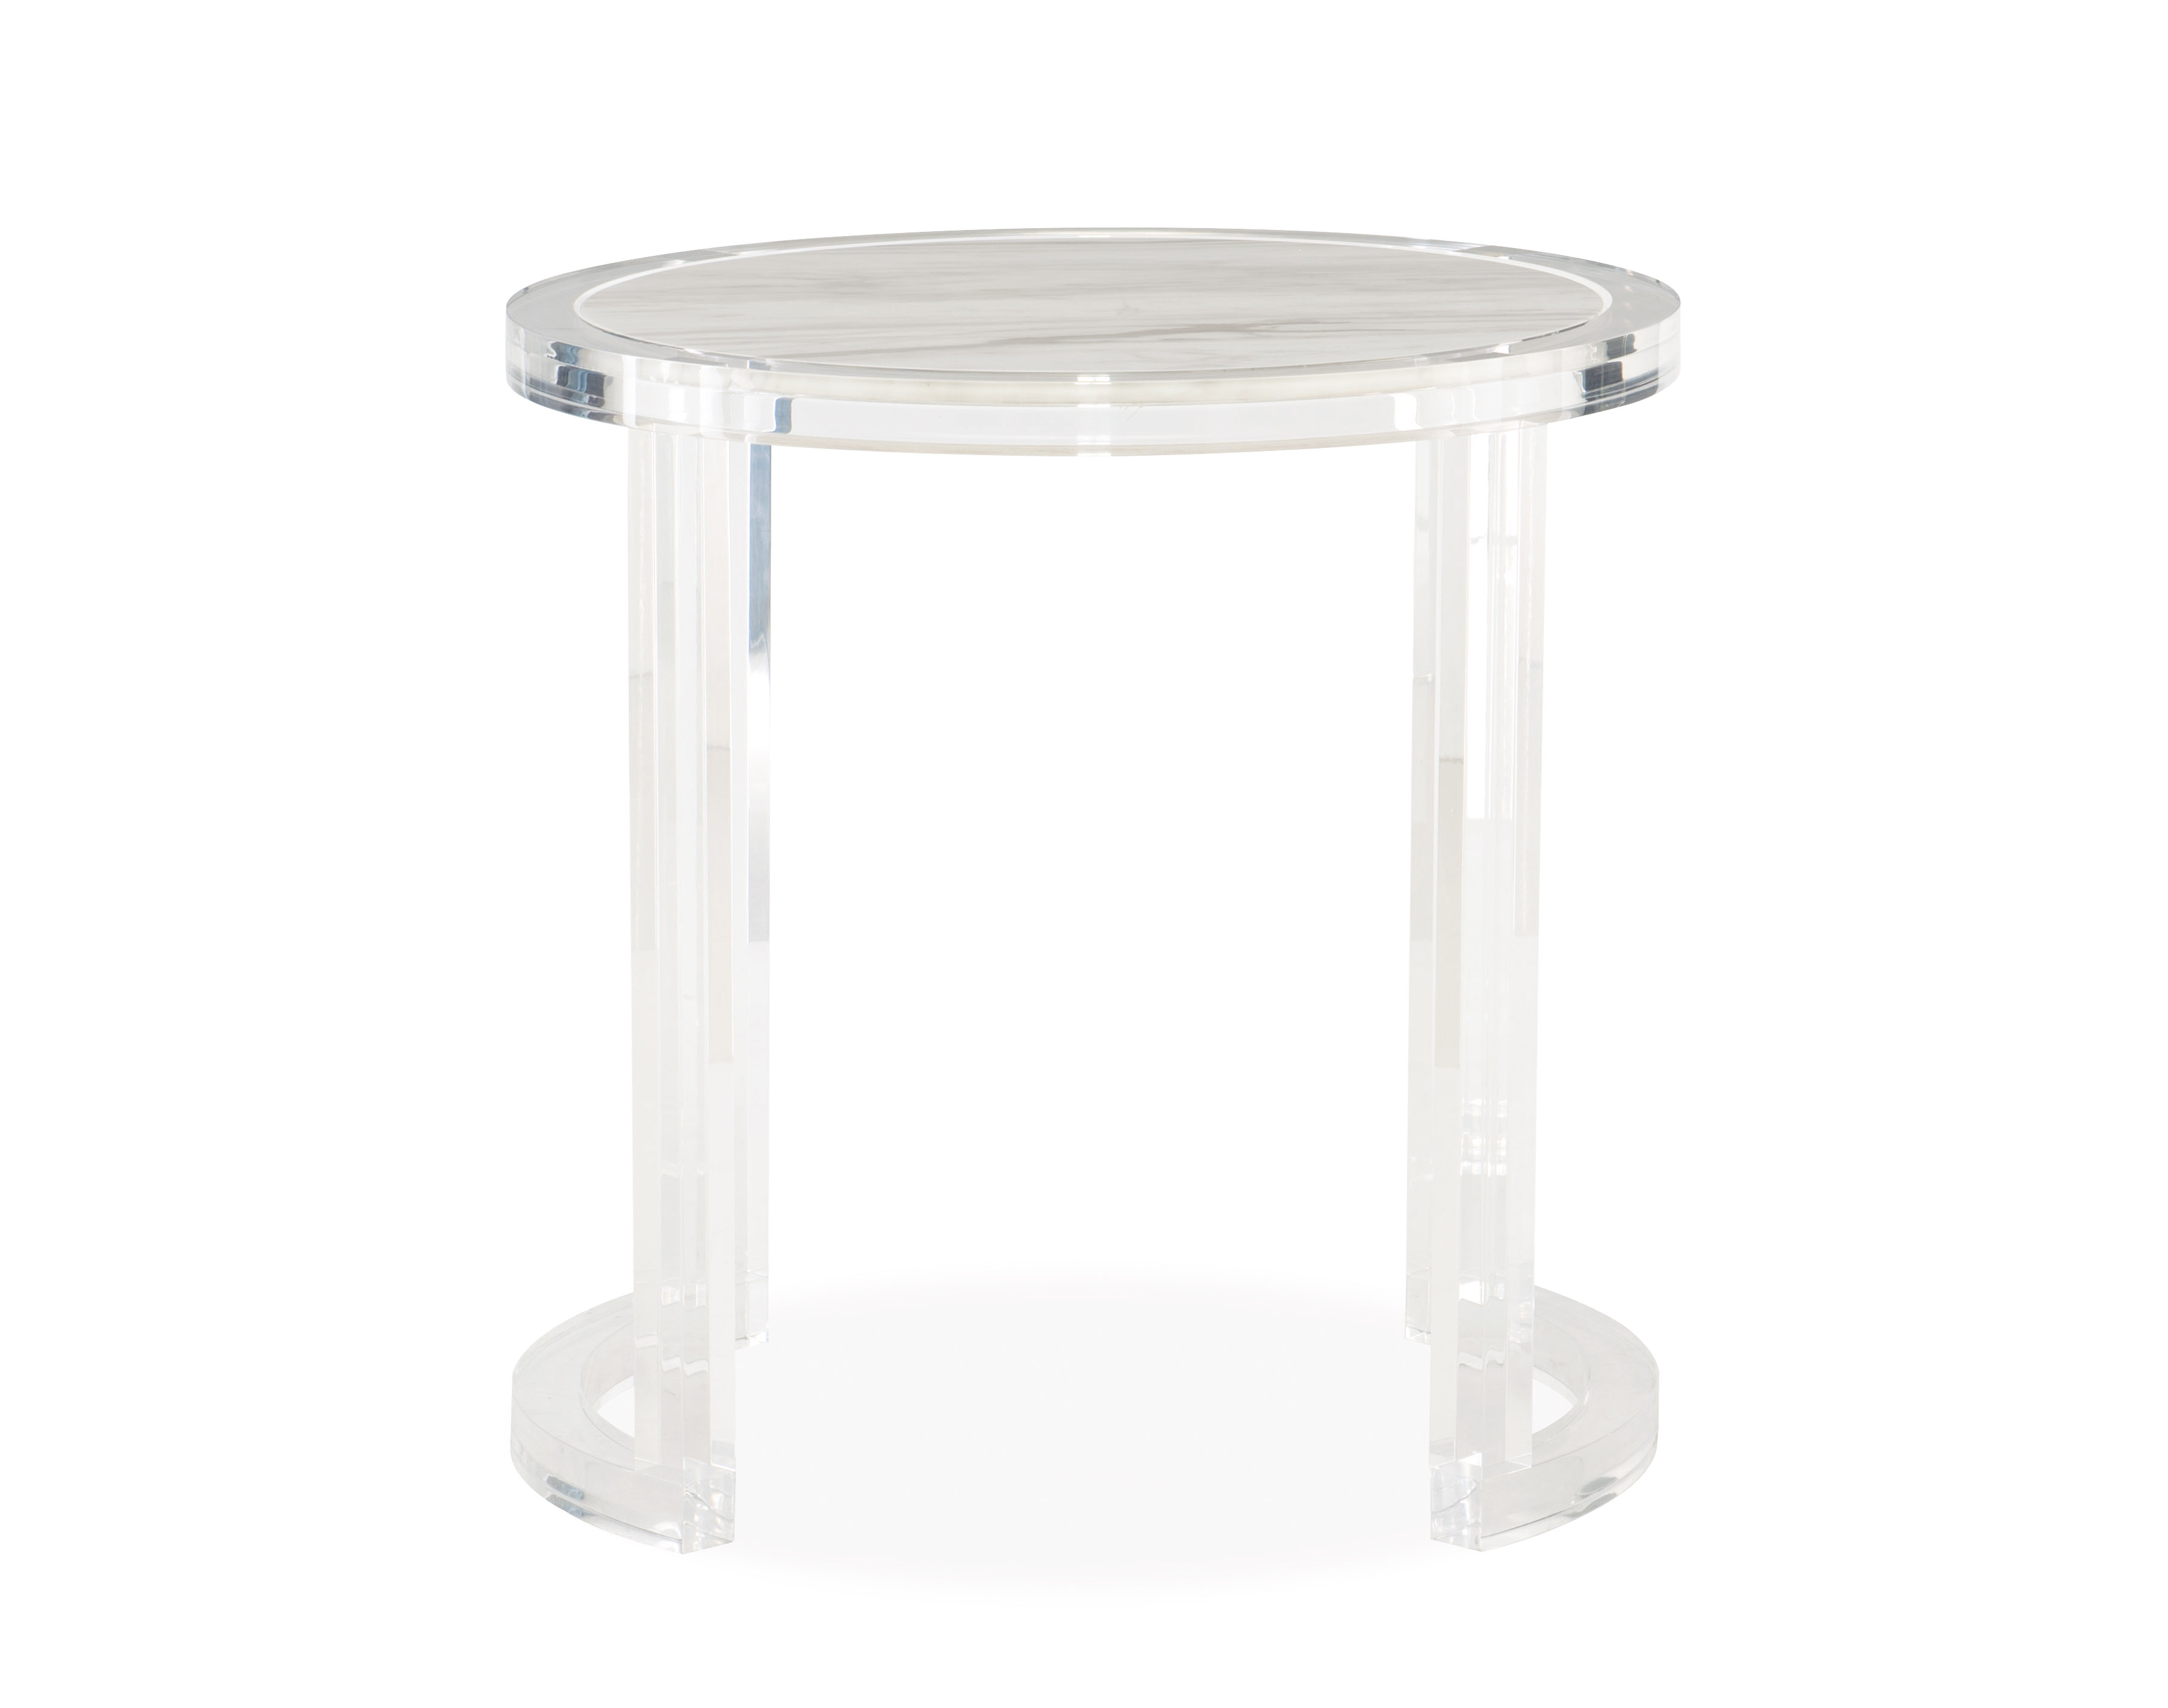 astra acrylic end table living room side accent tables bernhardt furniture robb stucky solid wood small stand steel legs essentials lamp semi circle modern black wrought iron